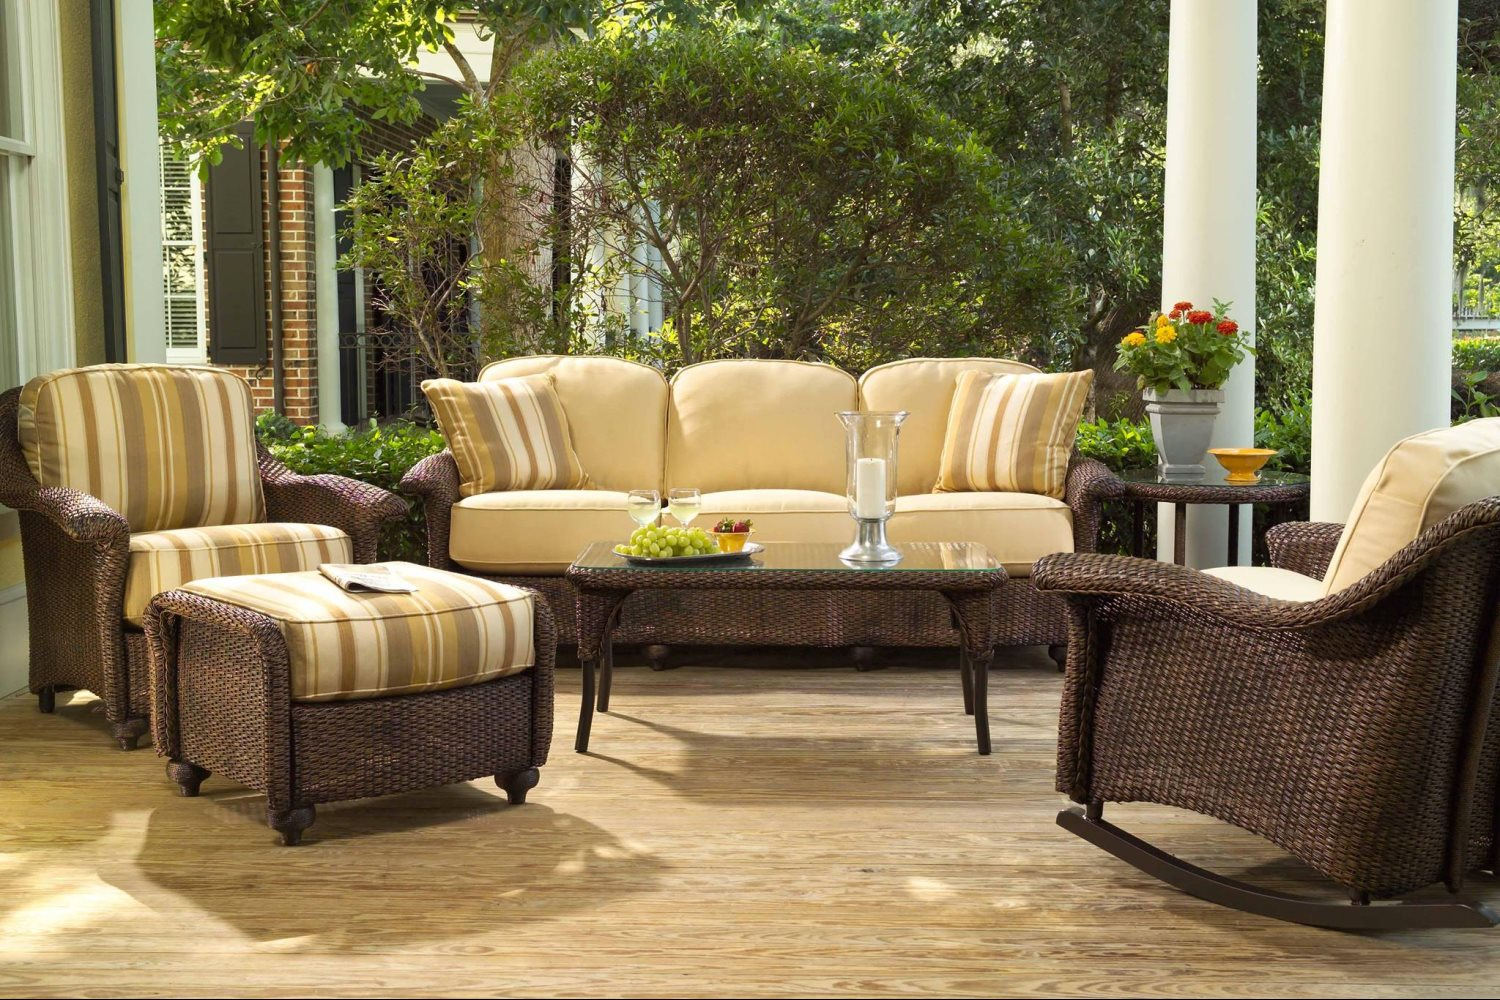 Patio Furniture -Outdoor Seating & Dining